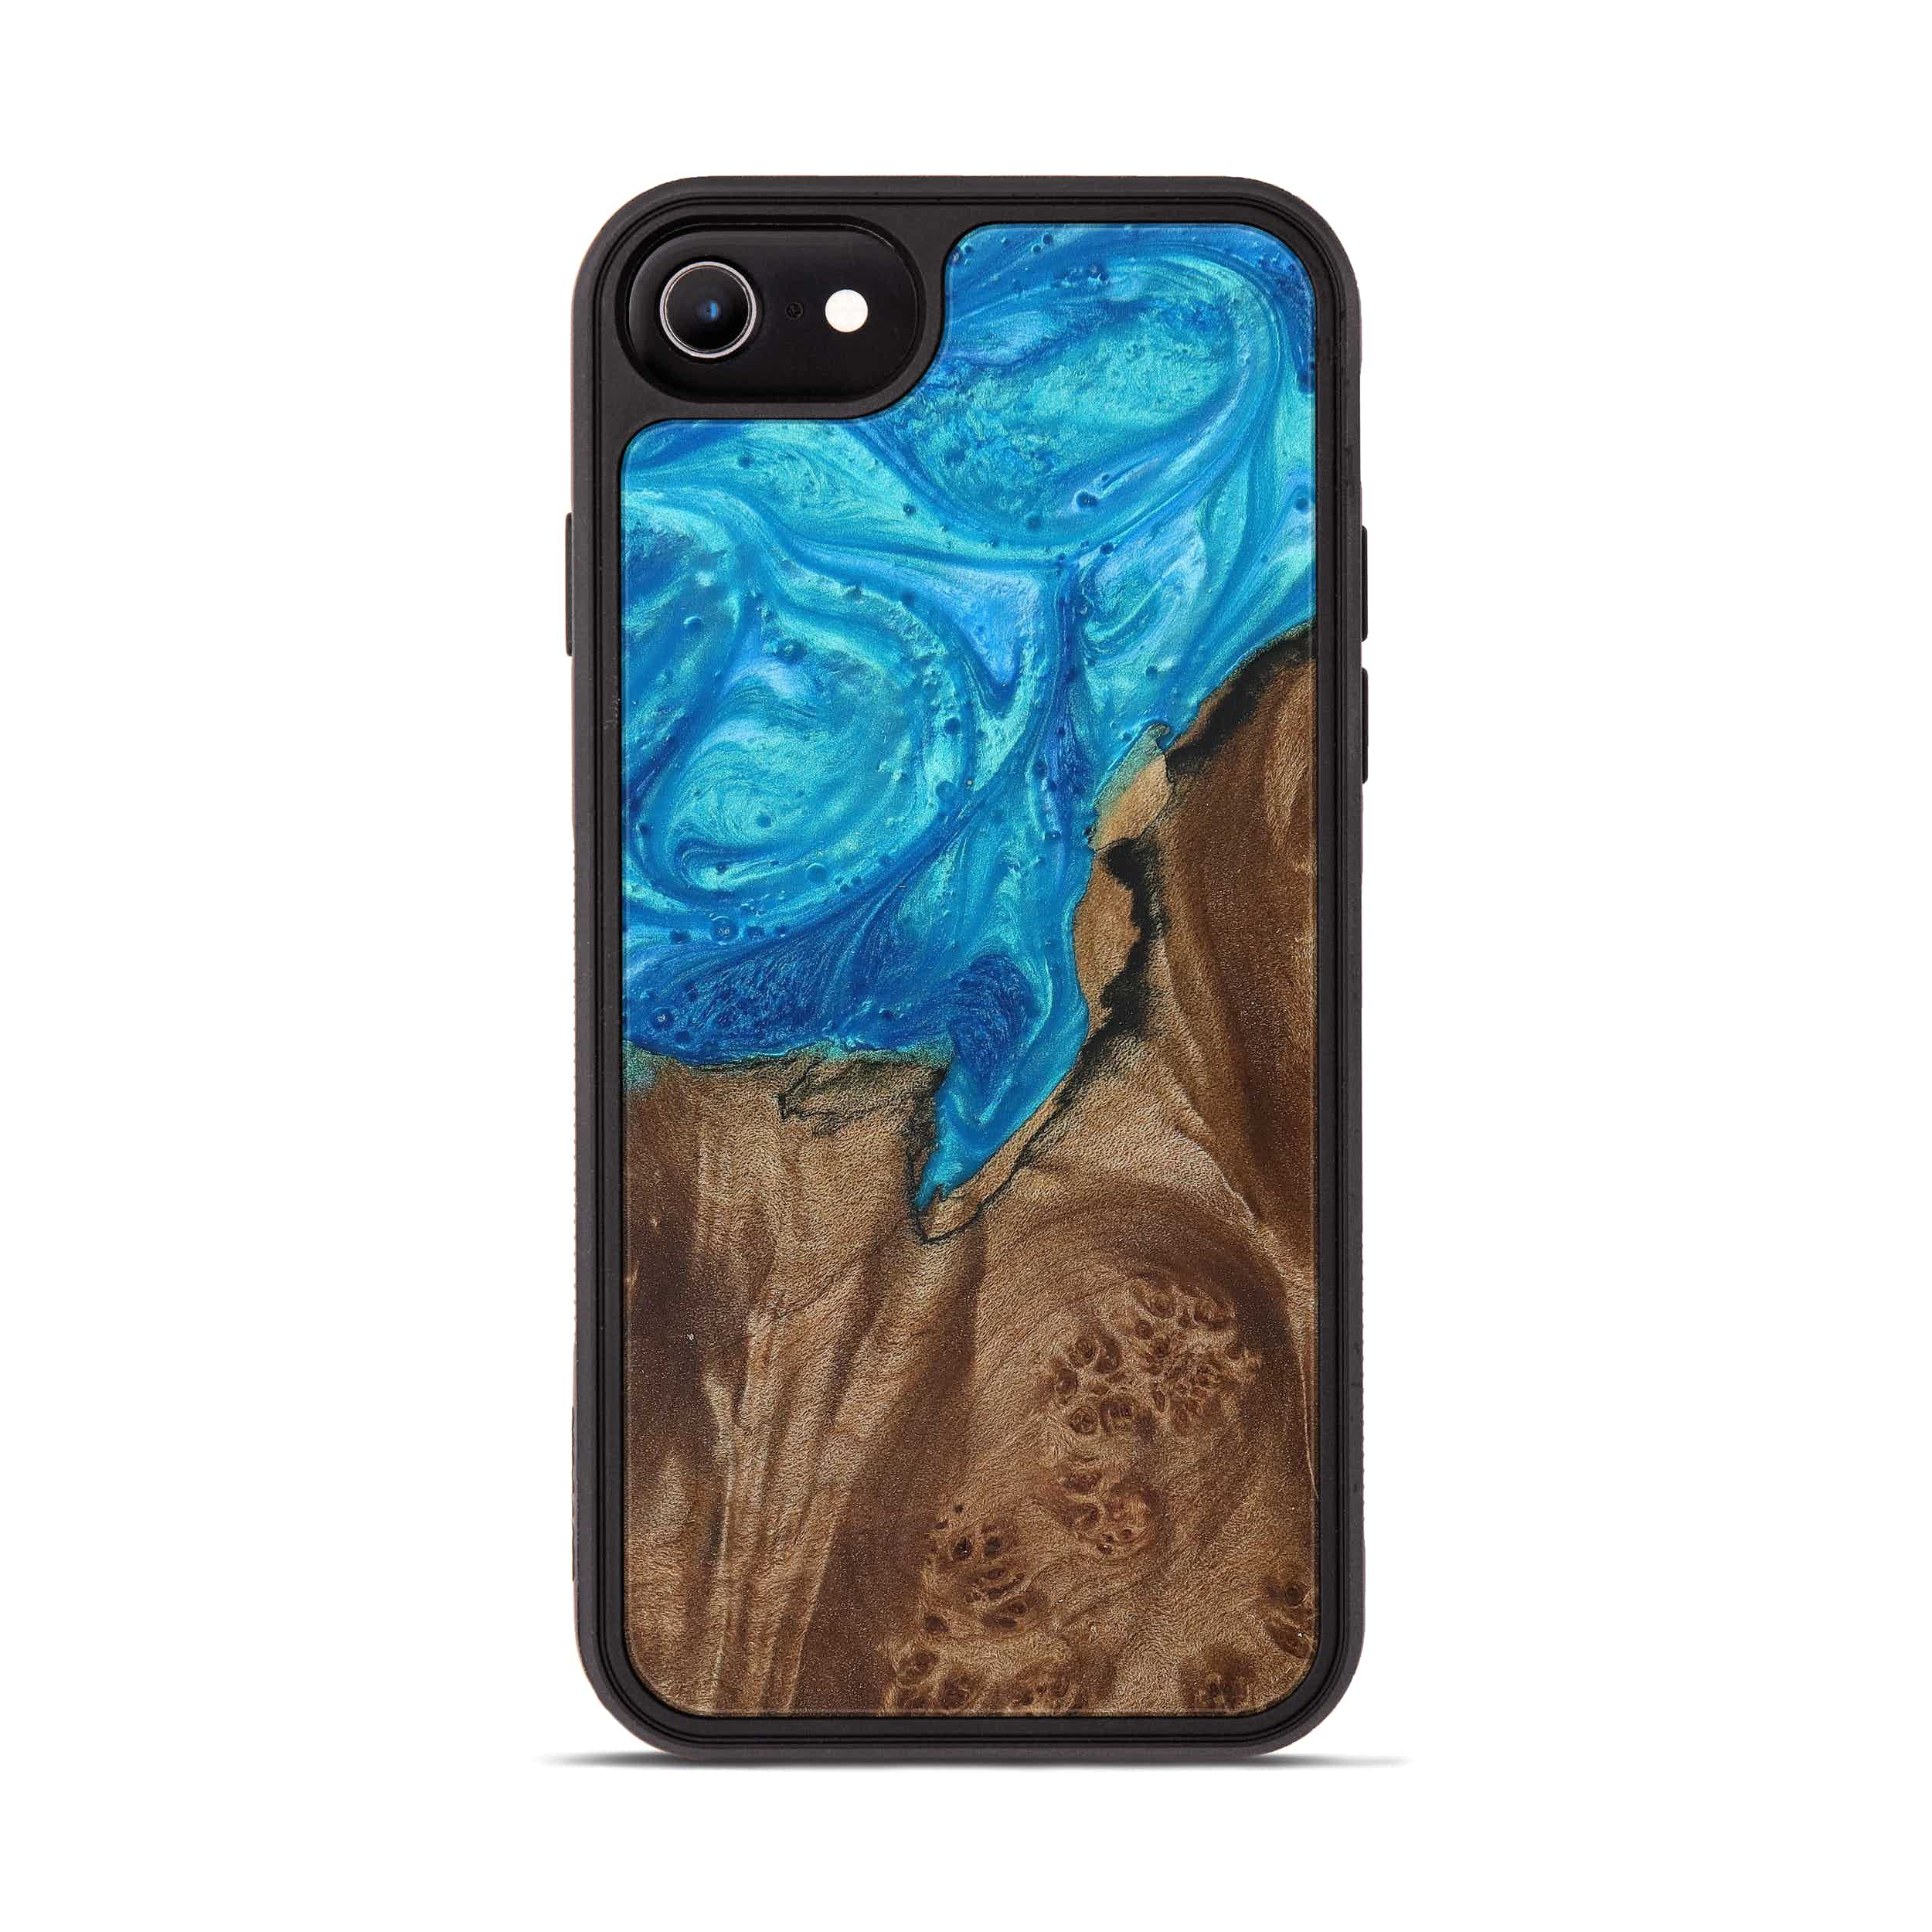 iPhone 6s Wood+Resin Phone Case - Janean (Light Blue, 387684)